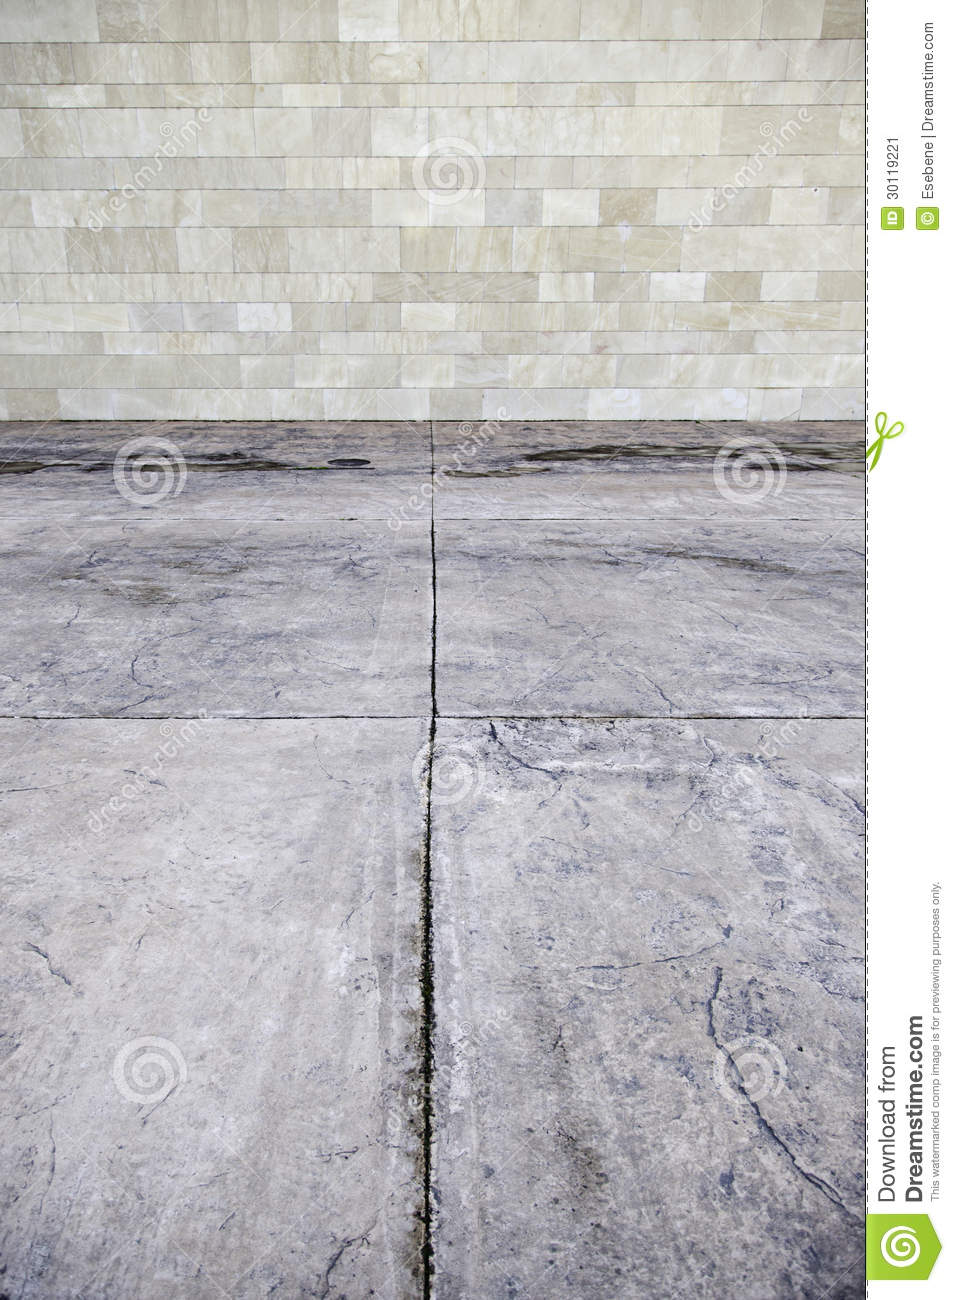 Stone Wall And Concrete Floor Stock Image - Image: 30119221